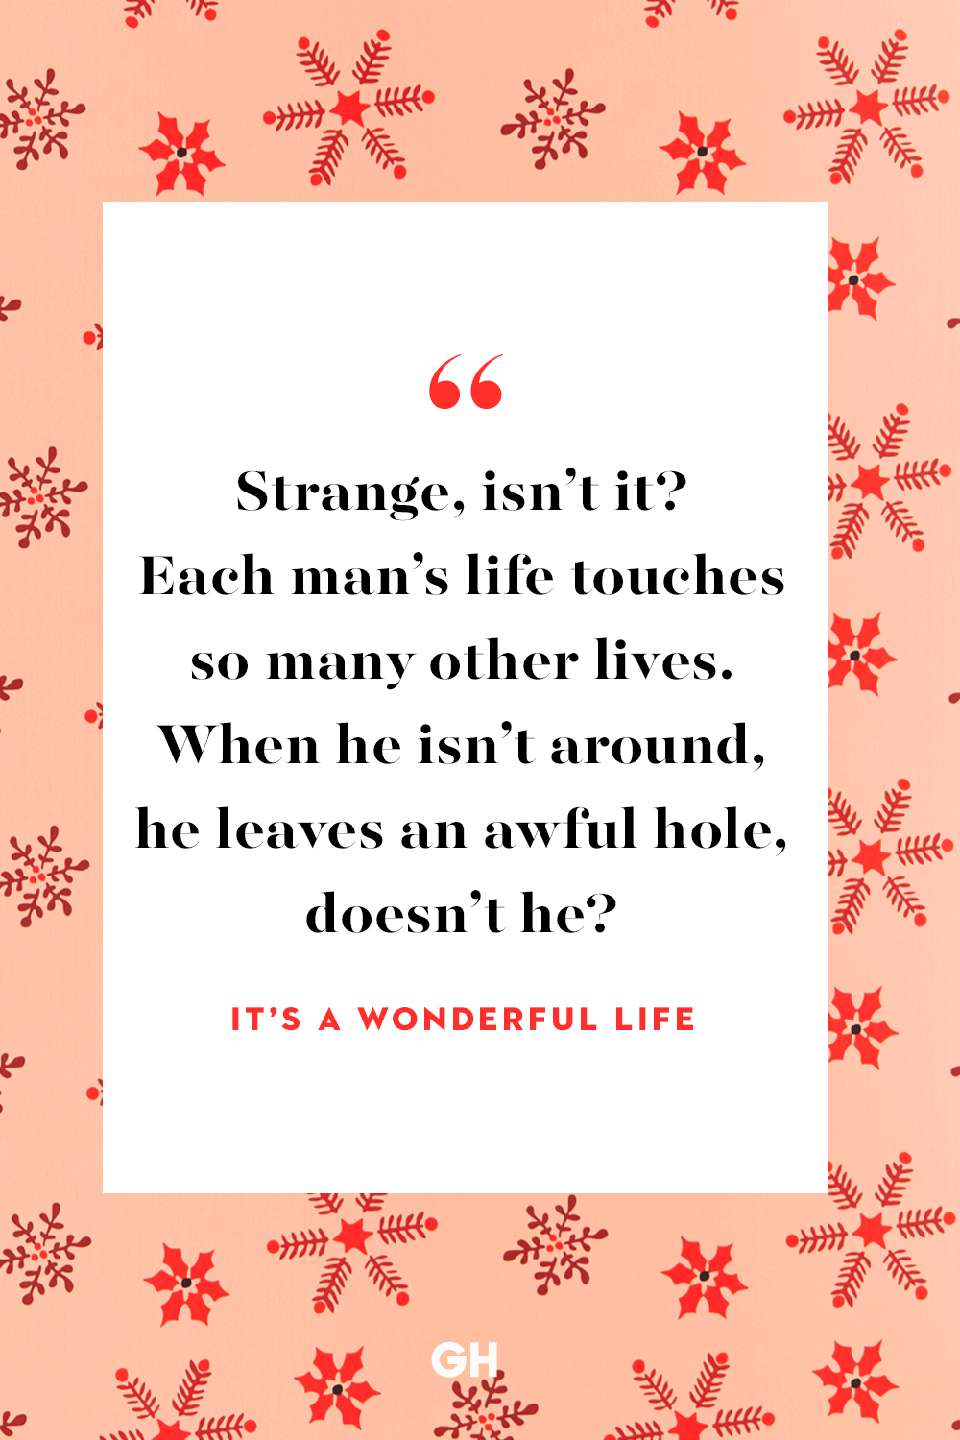 <p>Strange, isn't it? Each man's life touches so many other lives. When he isn't around, he leaves an awful hole, doesn't he?</p>